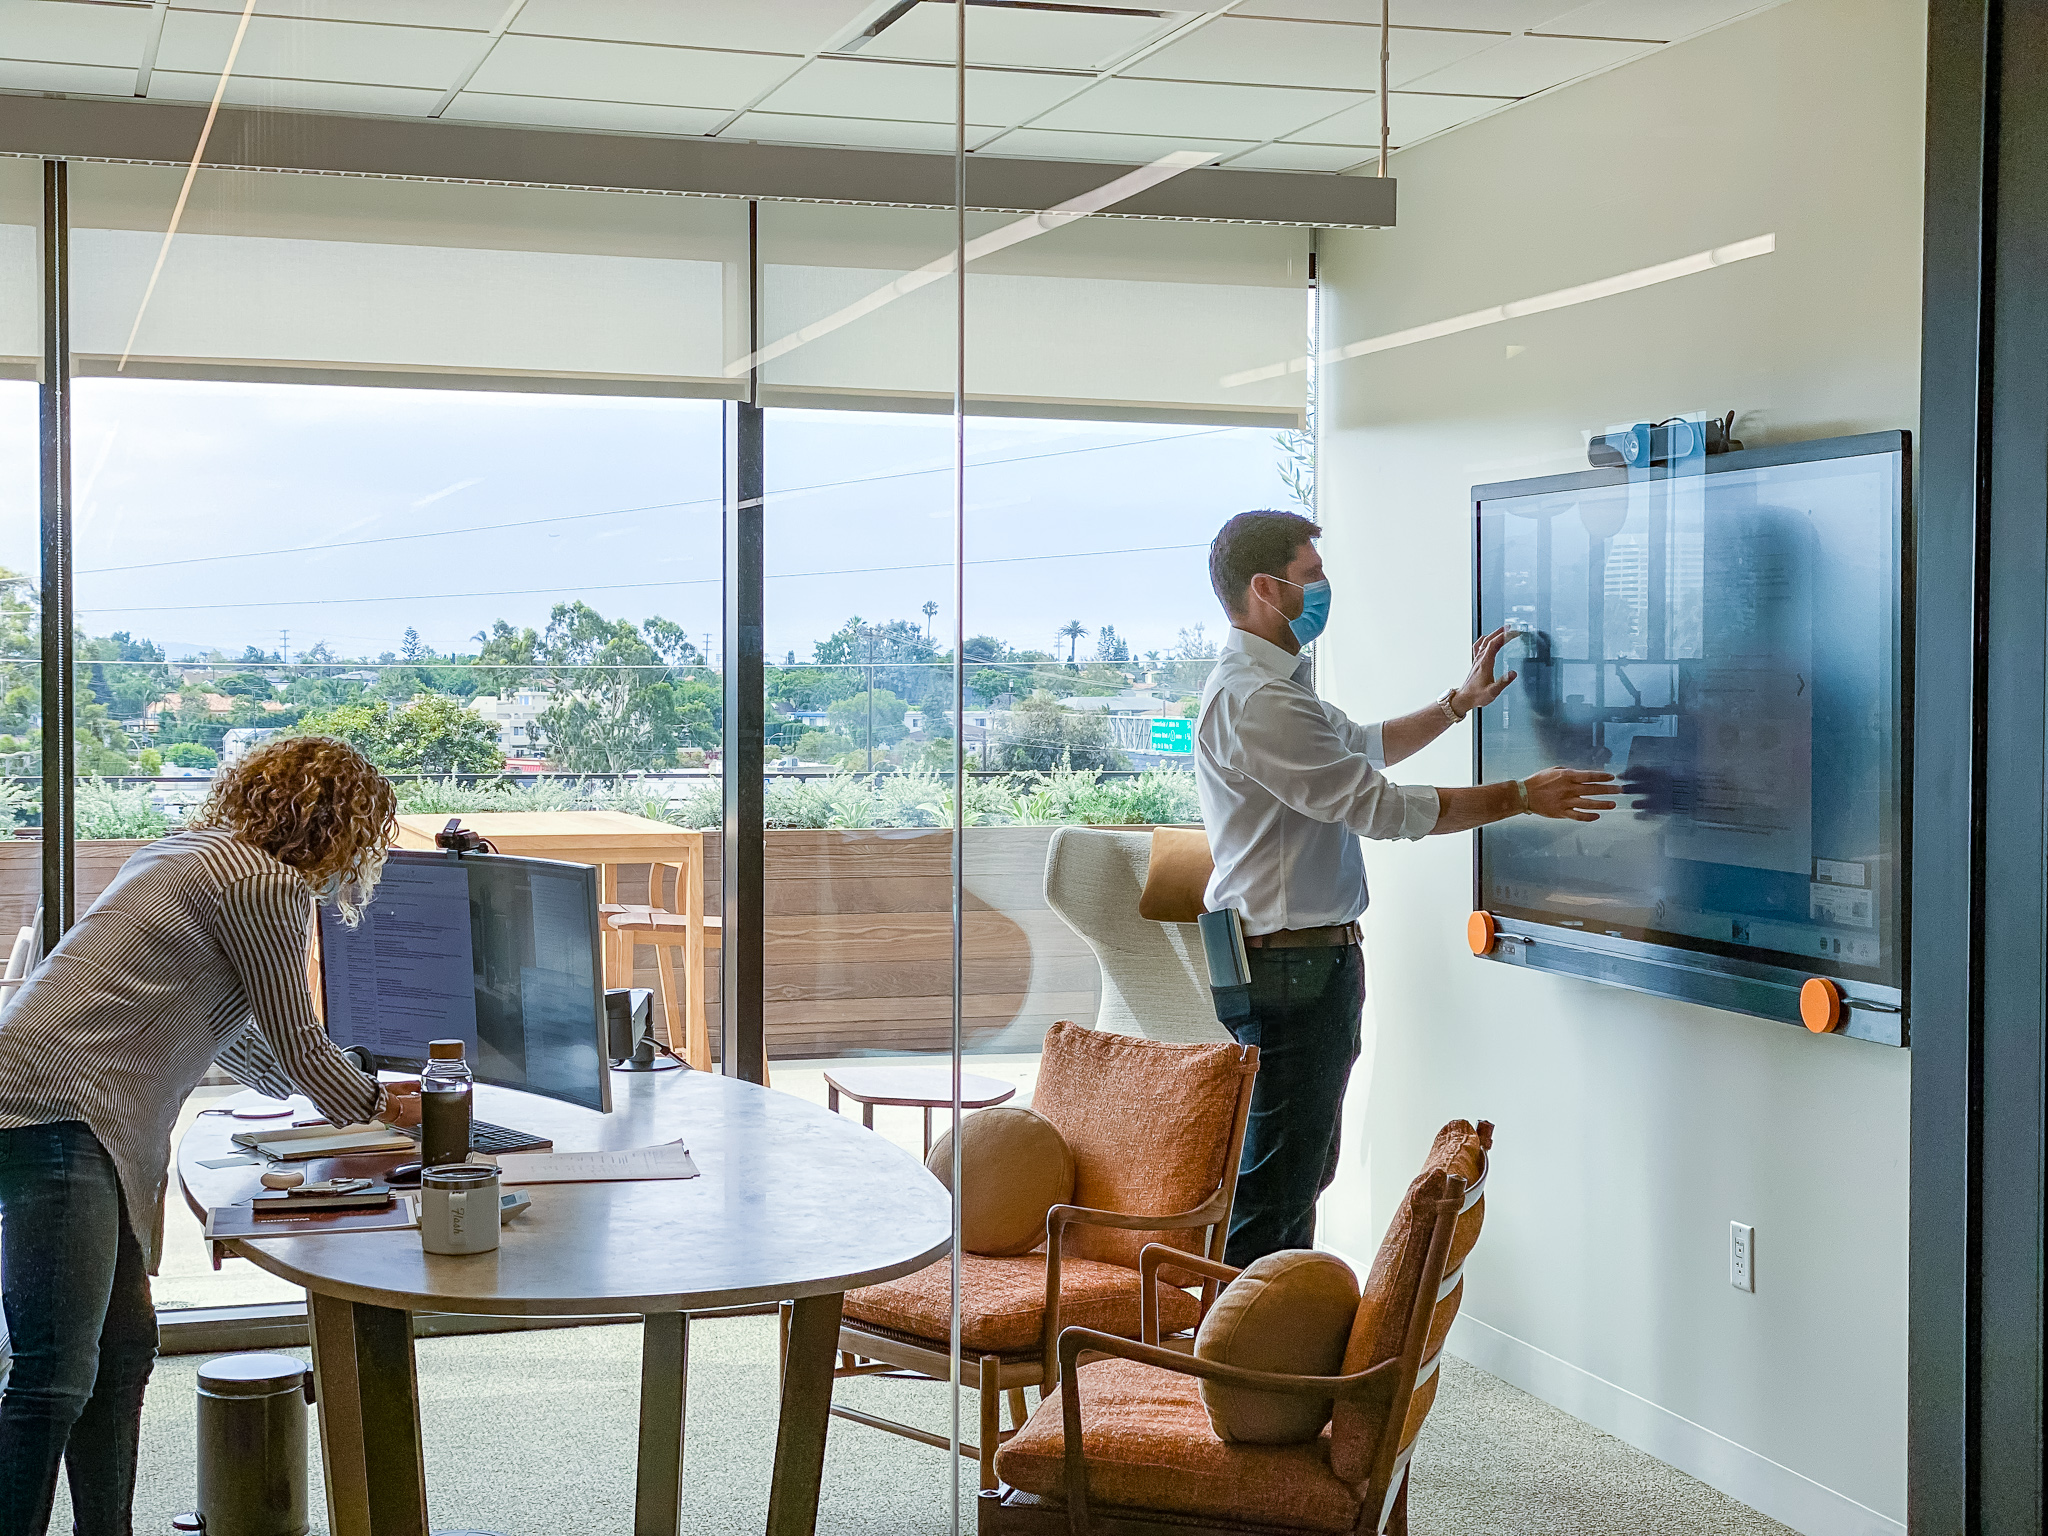 T1V-ThinkHub-USC-Ellison-Institute-Meeting-Room-Touchscreen-Social-Distancing-with-Masks-ThinkHub-Collaboration-Interactive-Software-CA-2020 (1)